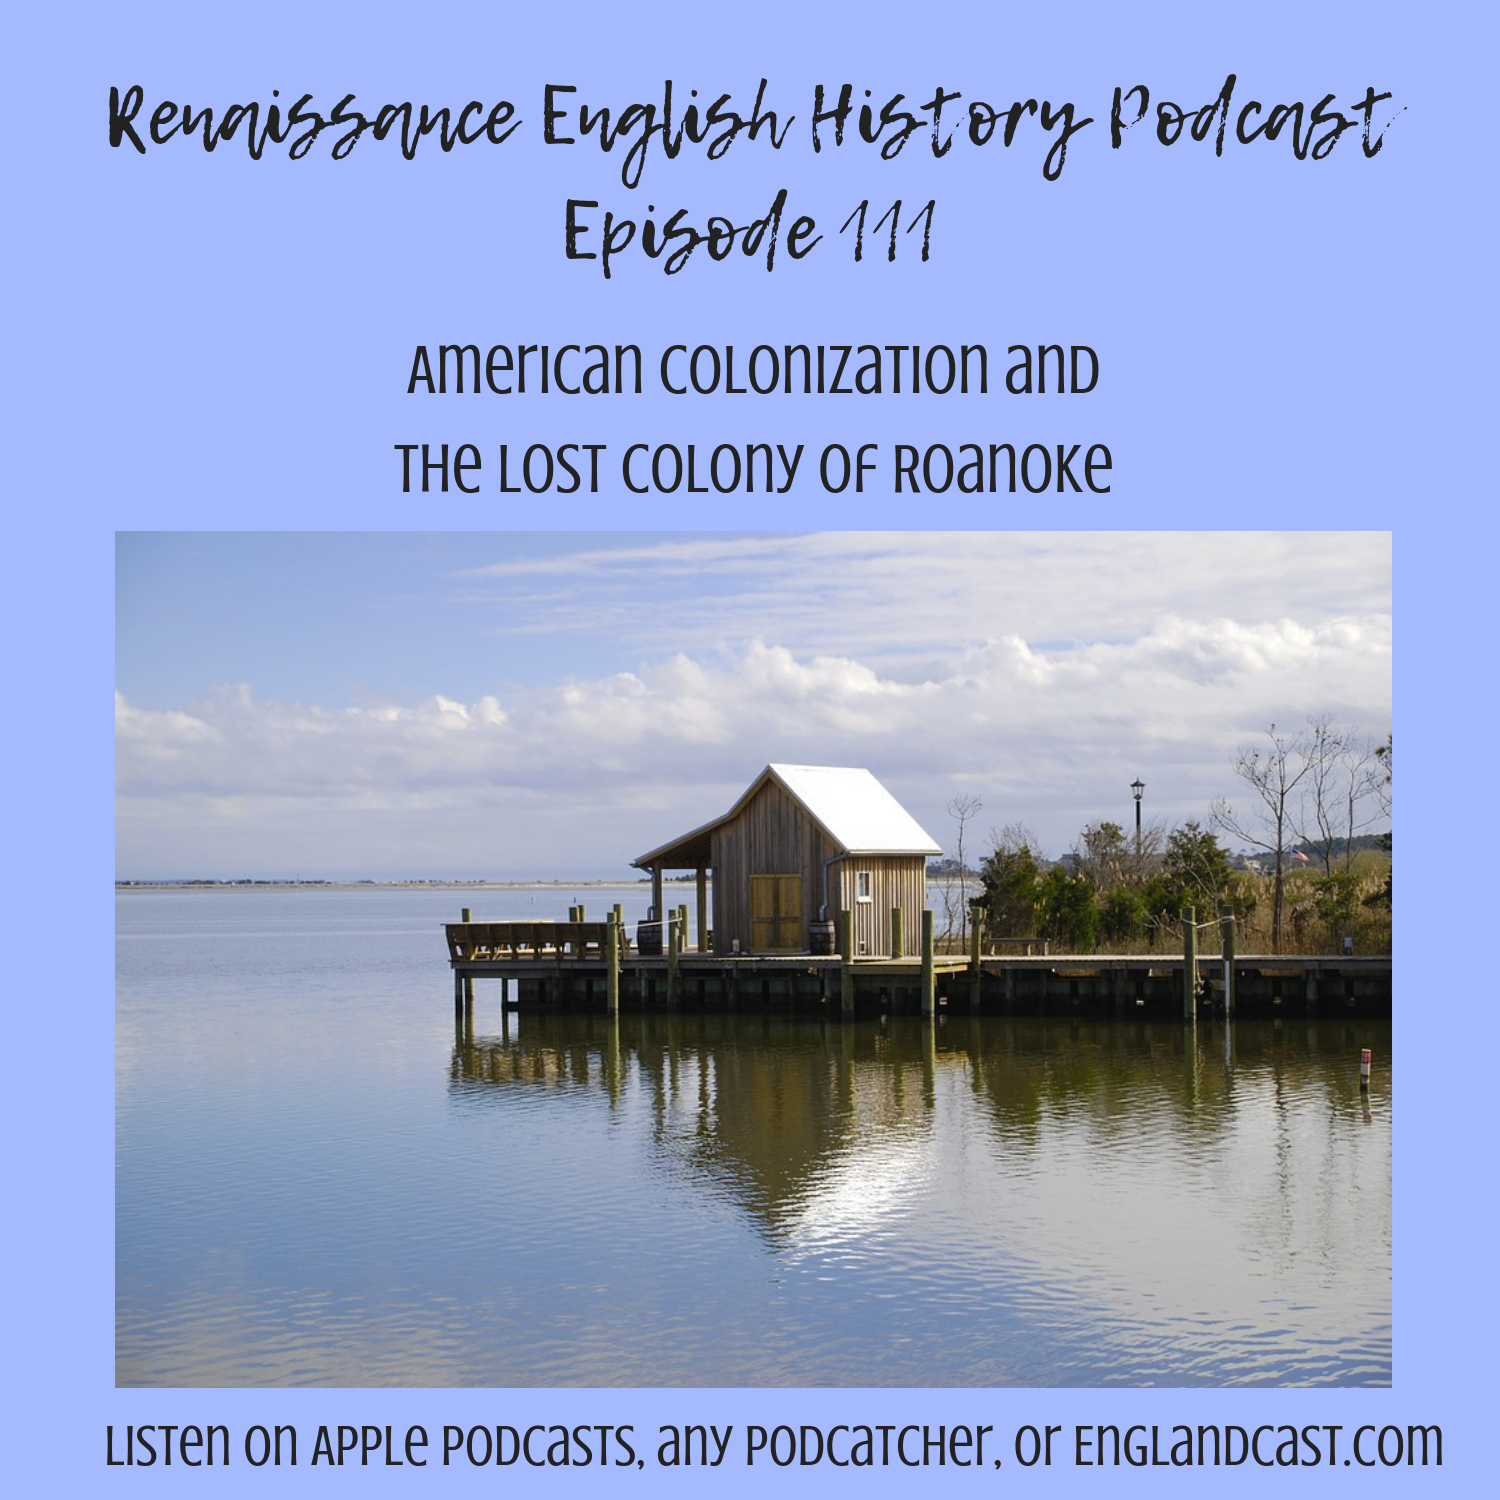 Episode 111: Early American Exploration, and the Lost Colony of Roanoke